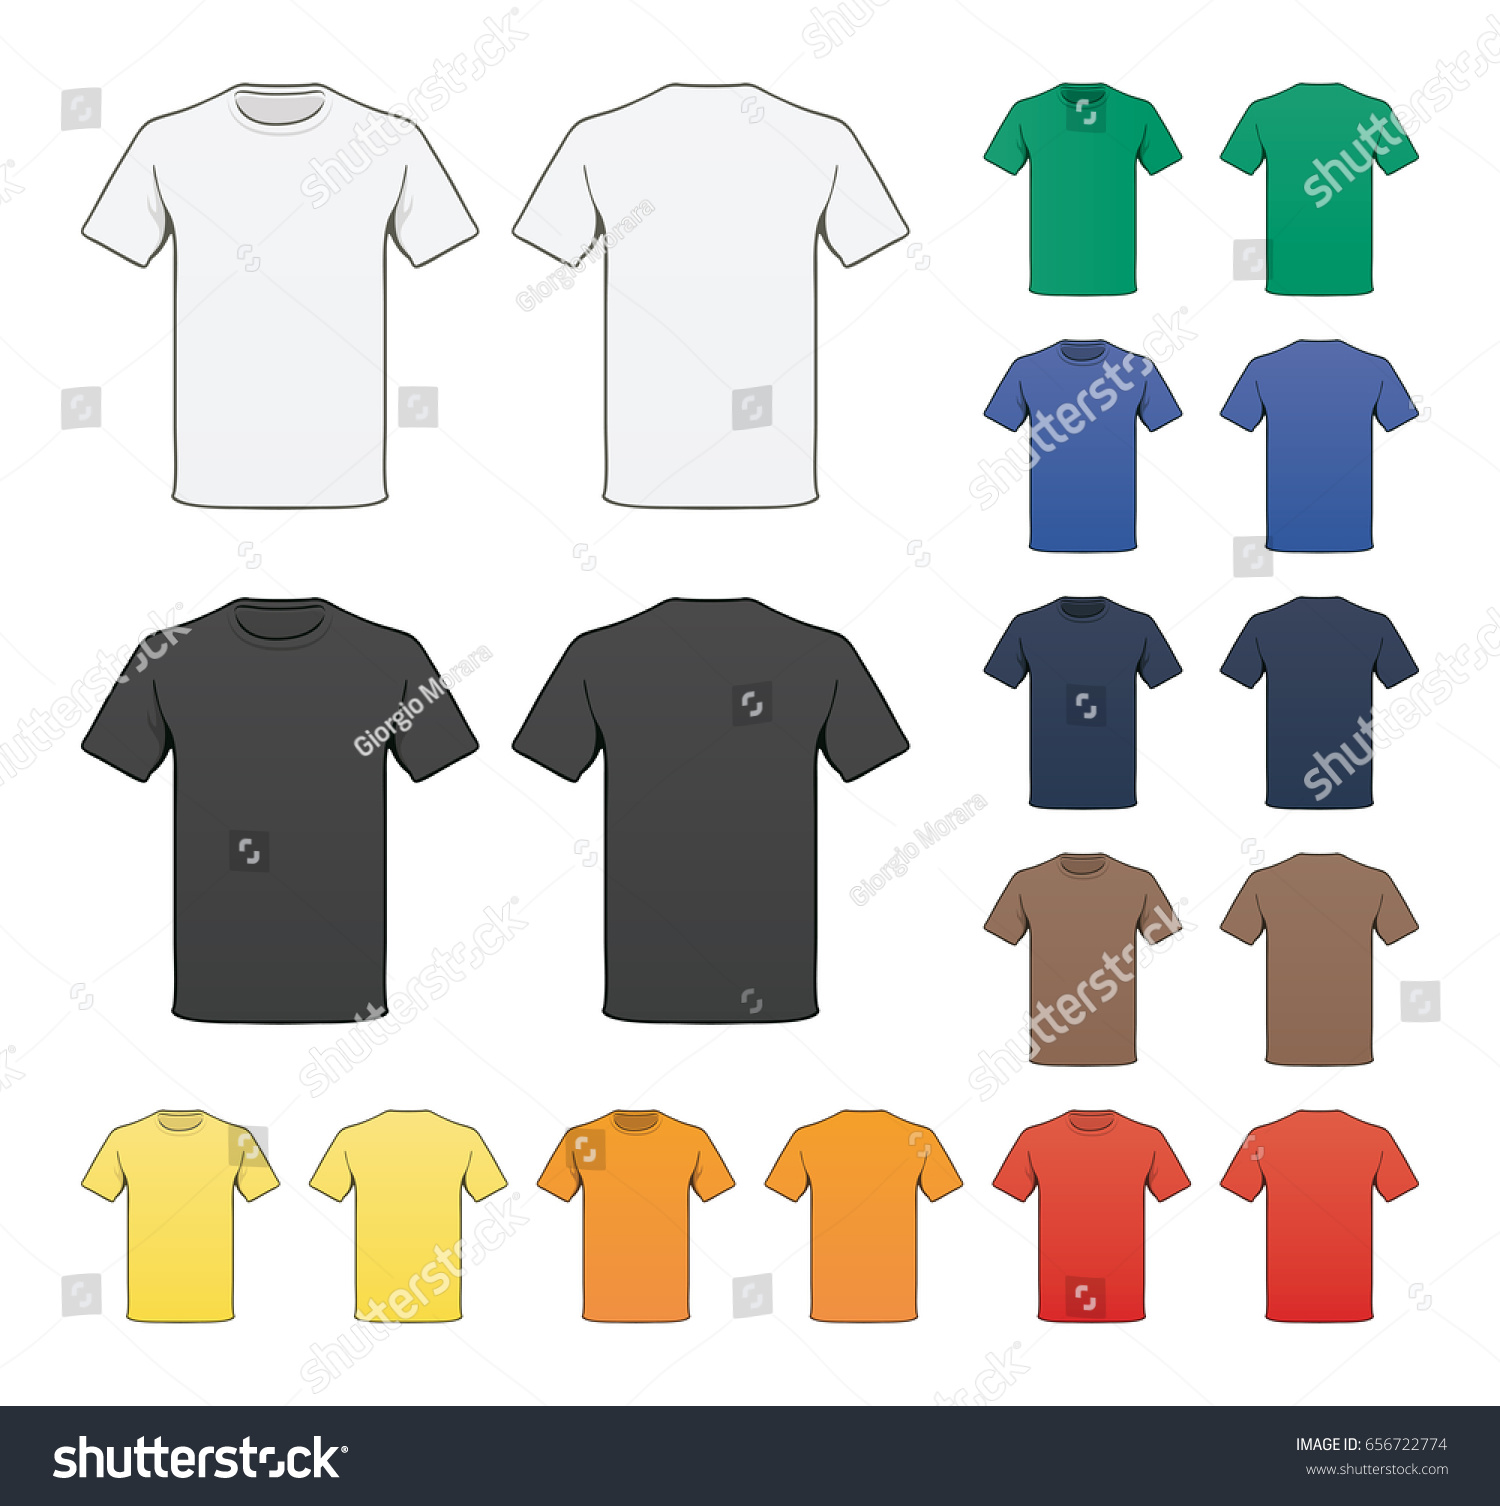 Blank Colored Tshirt Template Stock Vector (2018) 656722774 ...